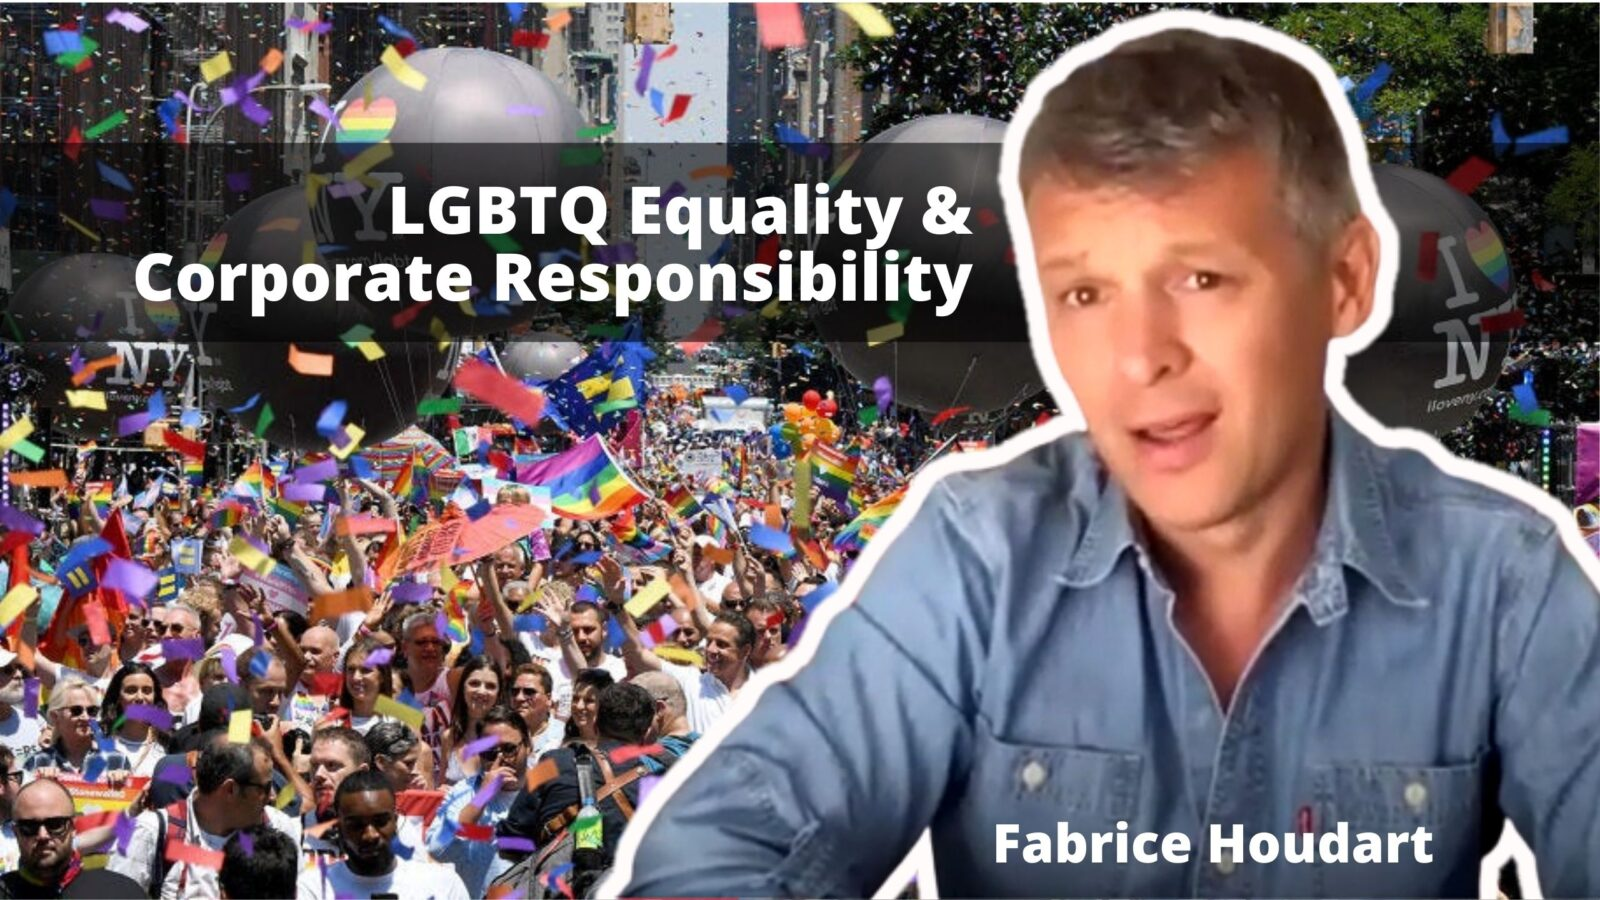 Fabrice Houdart LGBTQ equality corporate responsibity professionals pinkwashing lgbt authenticity OutBuro